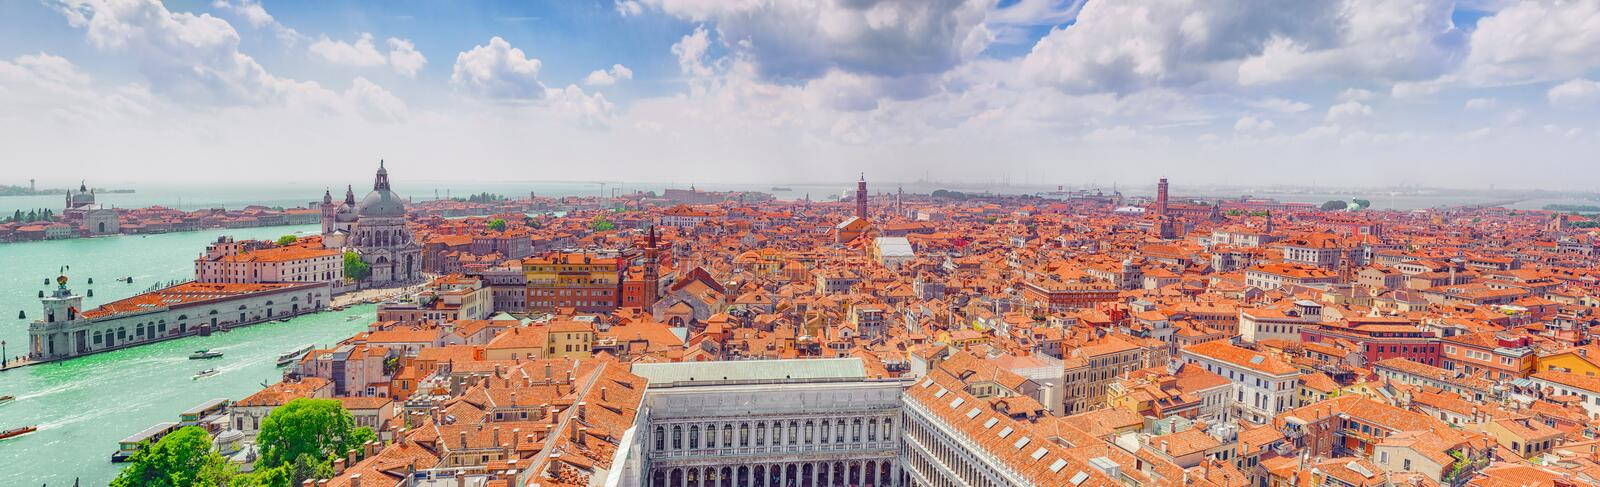 Panoramic view of Venice from the Campanile tower of St. Mark`s stock images